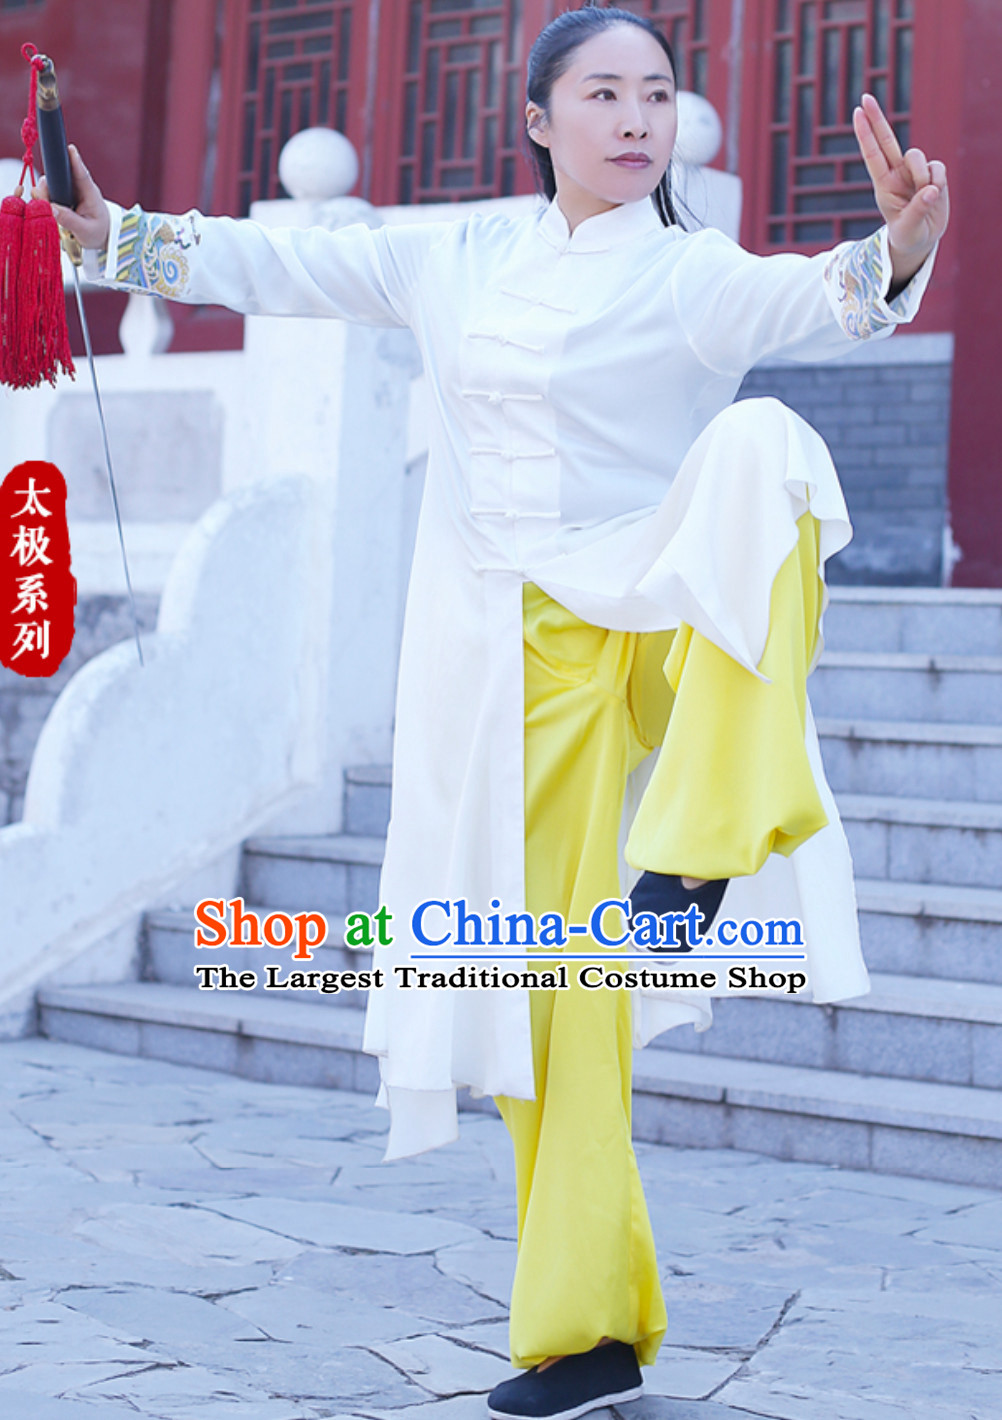 Top Chinese Traditional Competition Championship Tai Chi Teacher Taiji Kung Fu Wing Chun Kungfu Tai Ji Sword Gong Fu Master Suits Clothes Complete Set